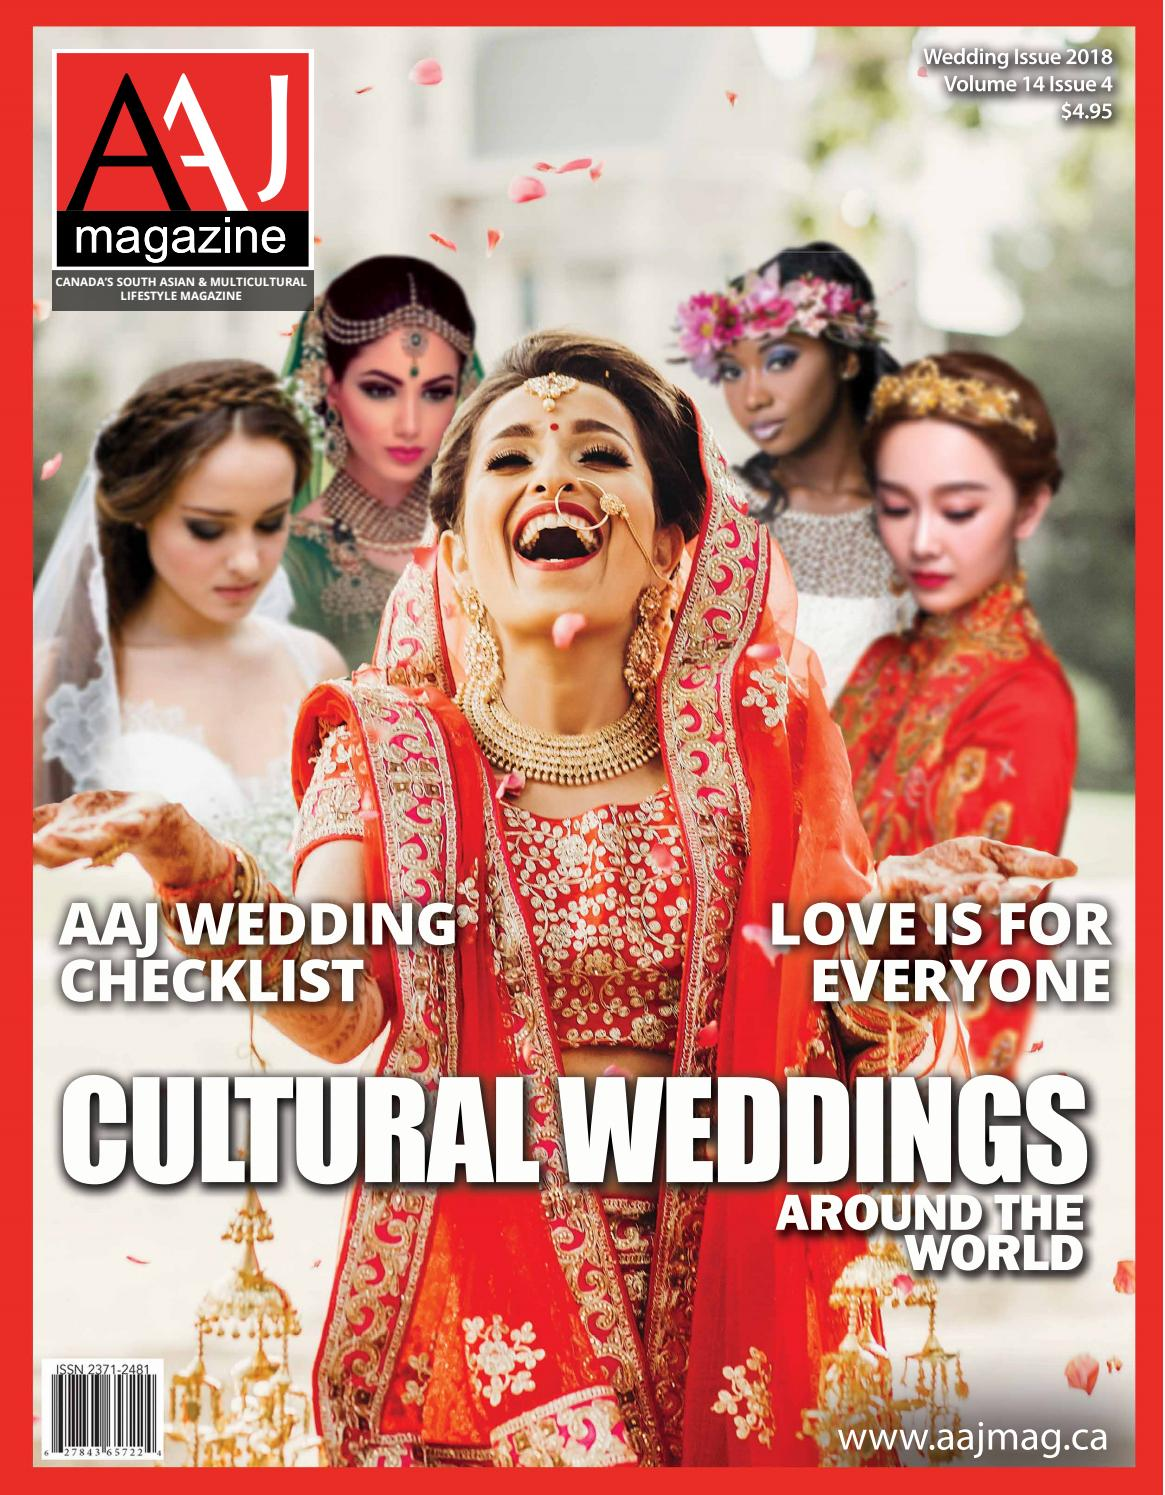 AAJ Wedding Issue 2018 by AAJ Magazine - issuu